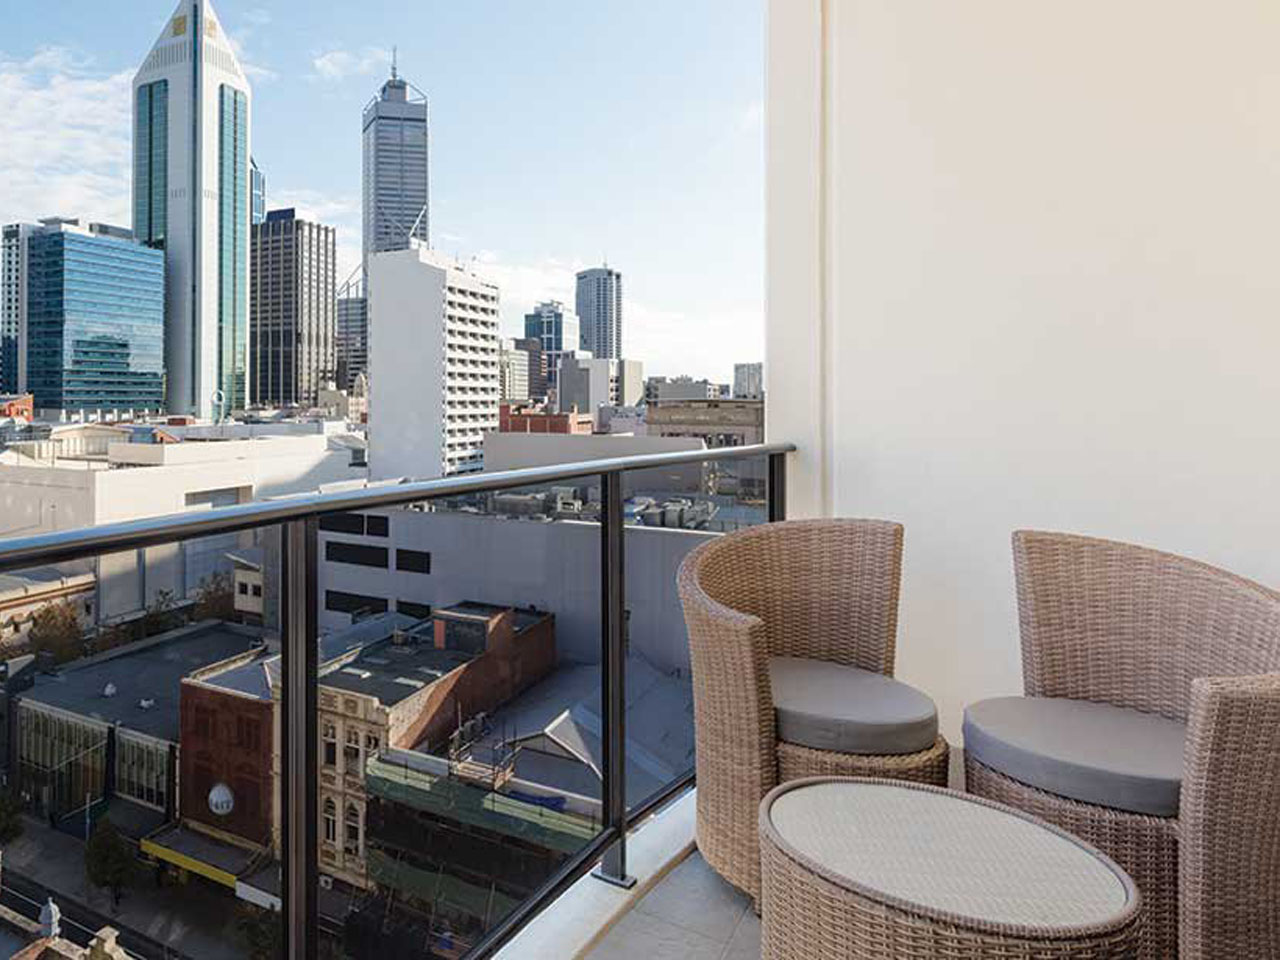 Apartment view of Perth city